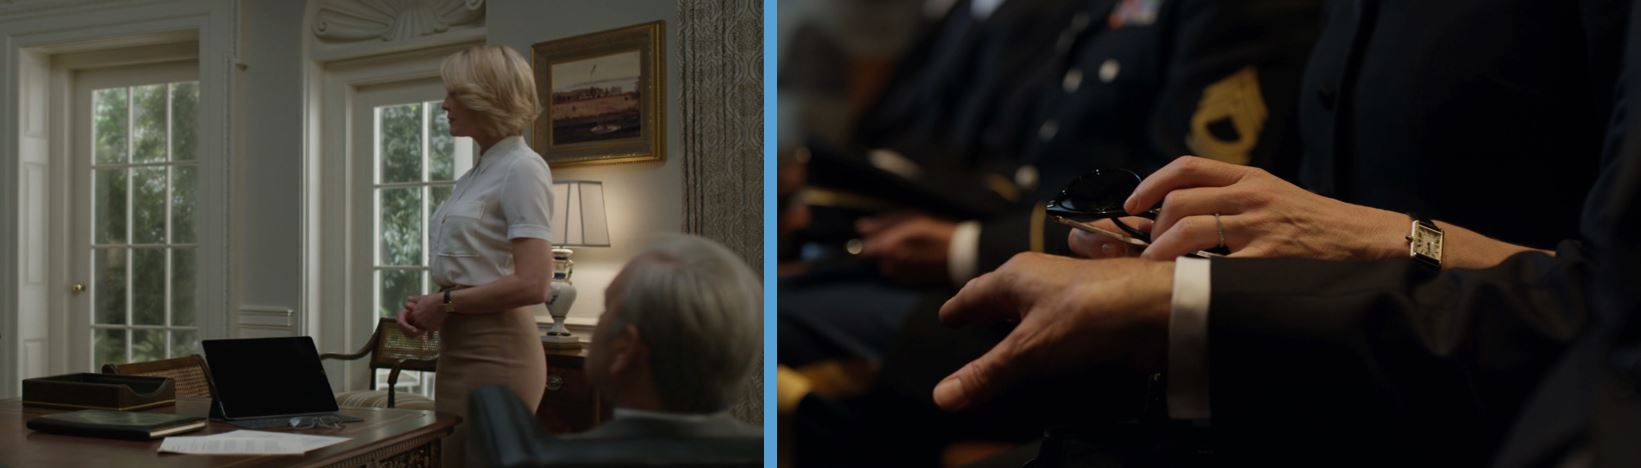 house of cards season 5 product placement branding Cartier